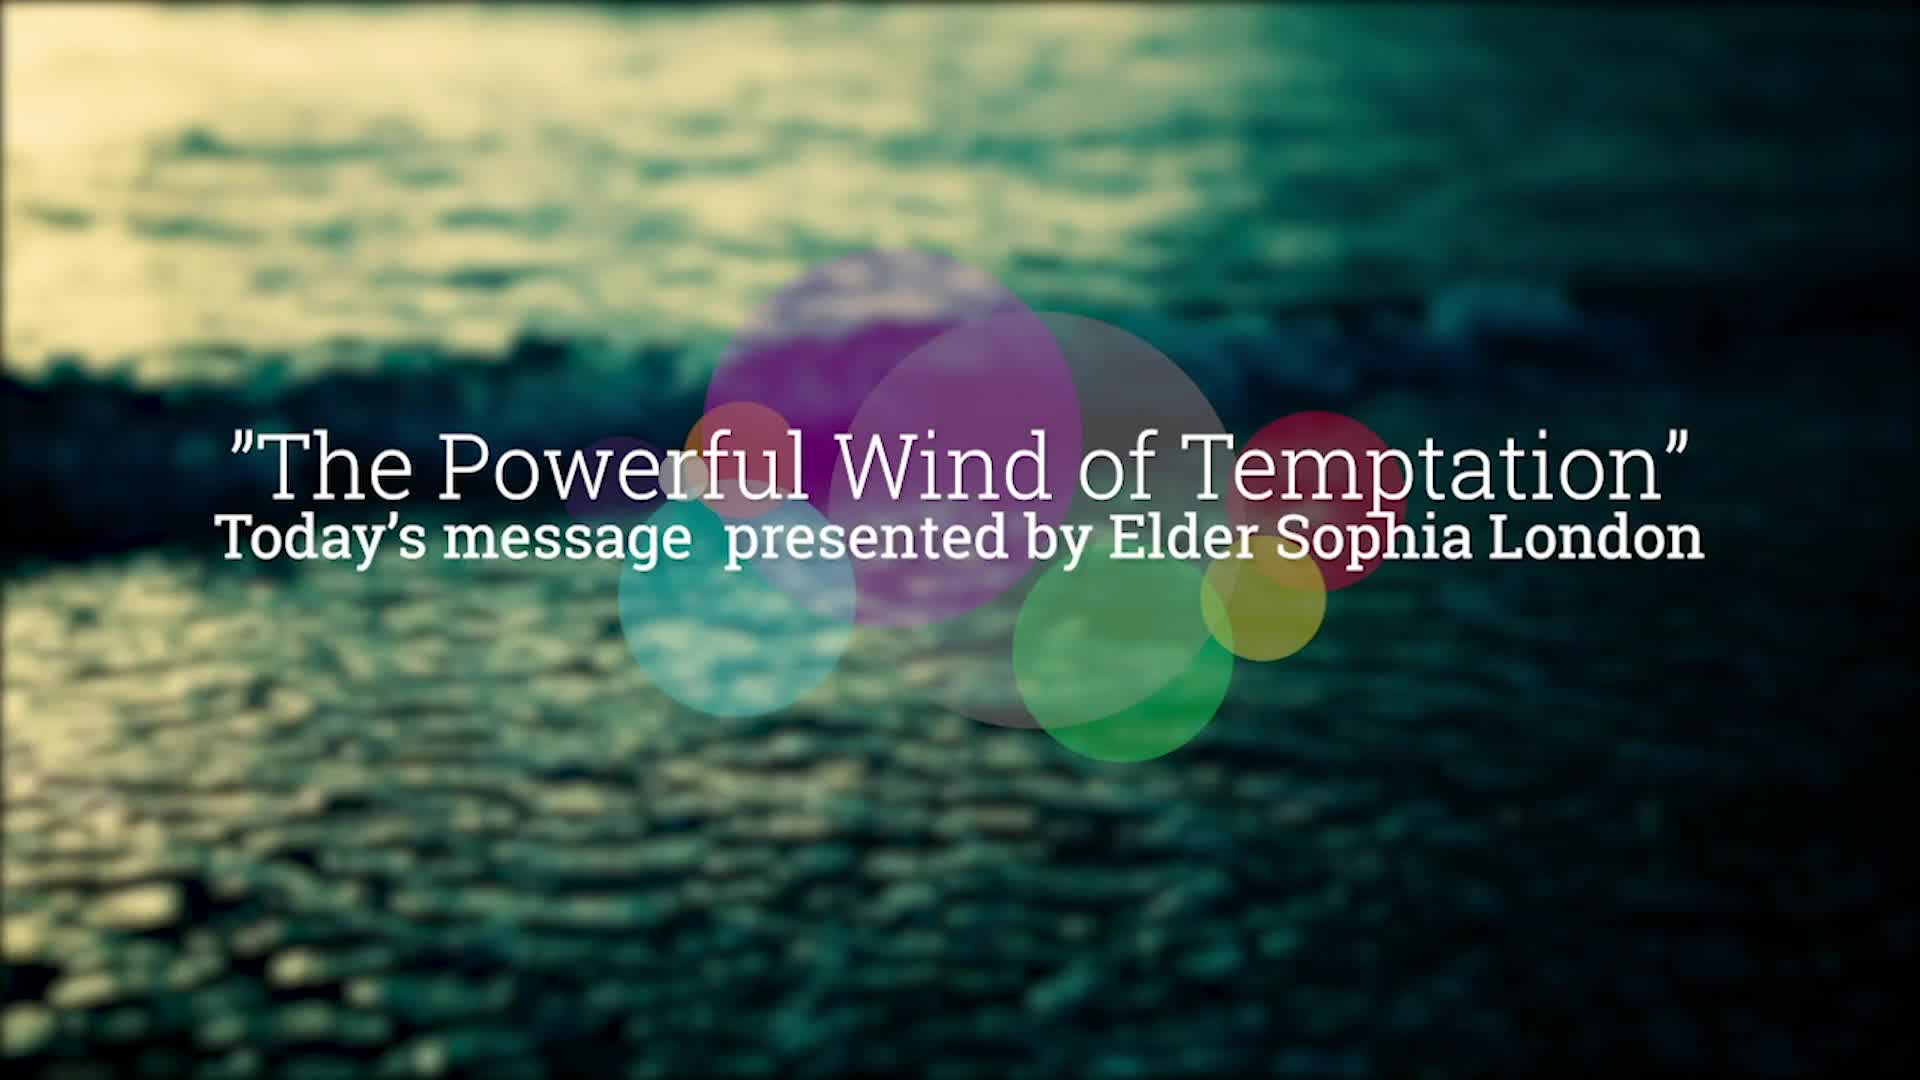 The Powerful Wind of Temptation